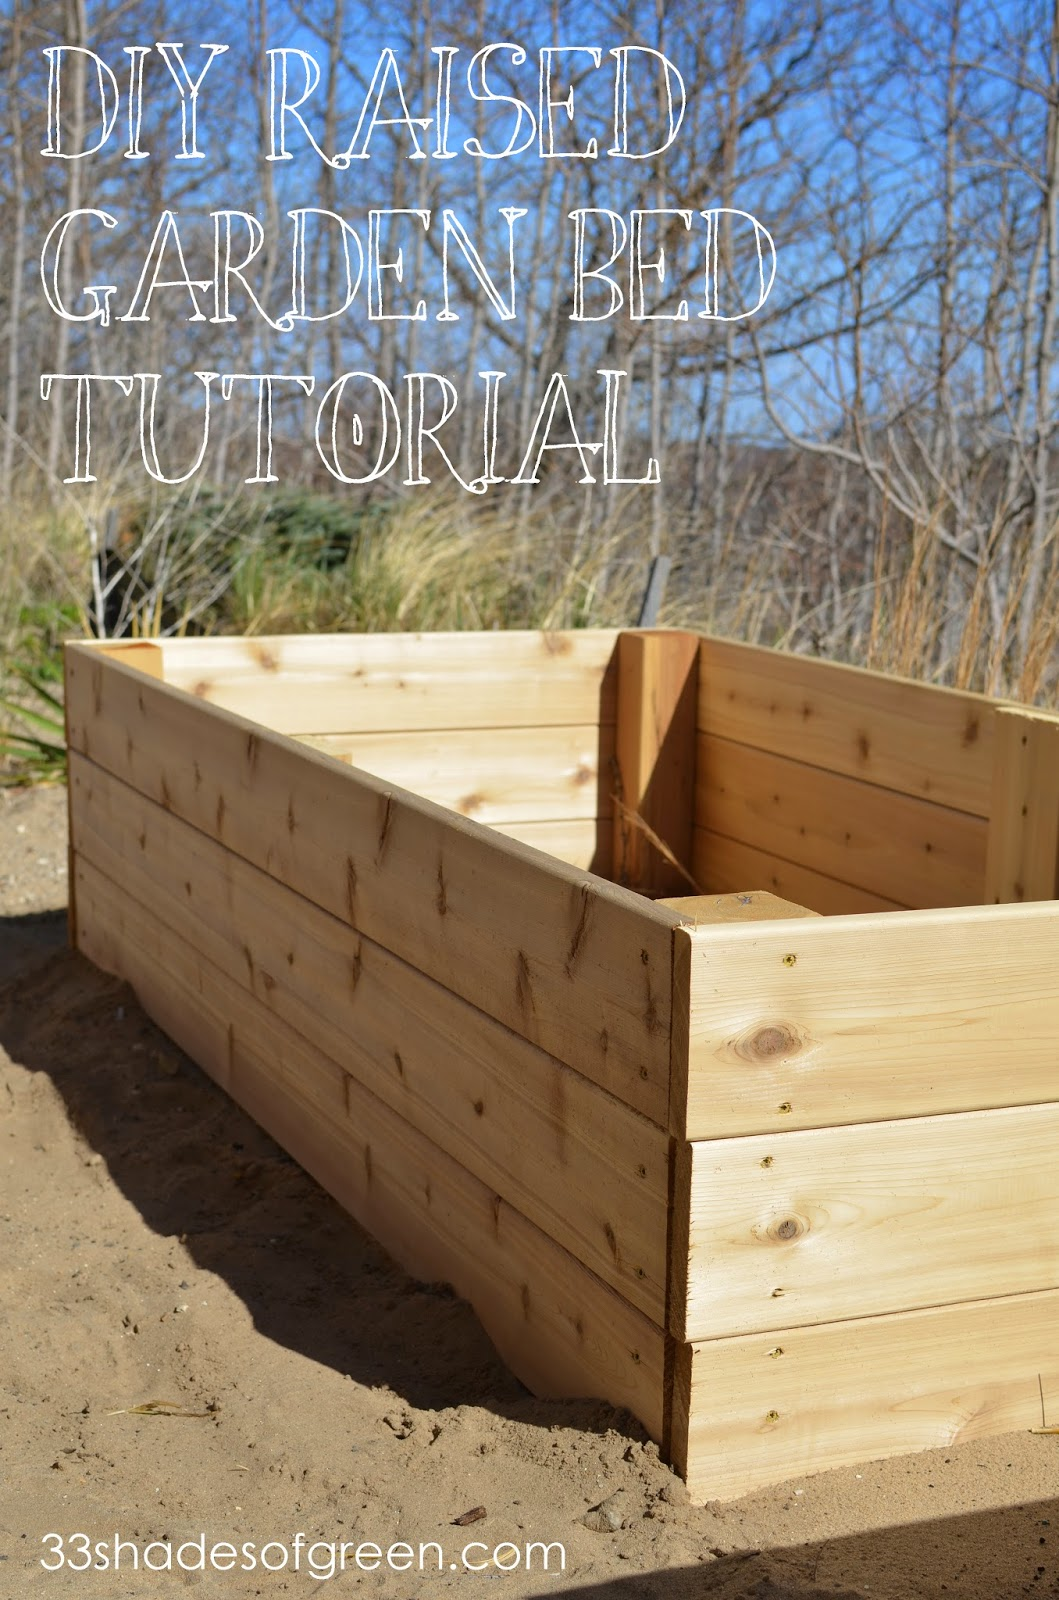 gardens of diy garden wood a raised beds build amazing rainbow bed piece